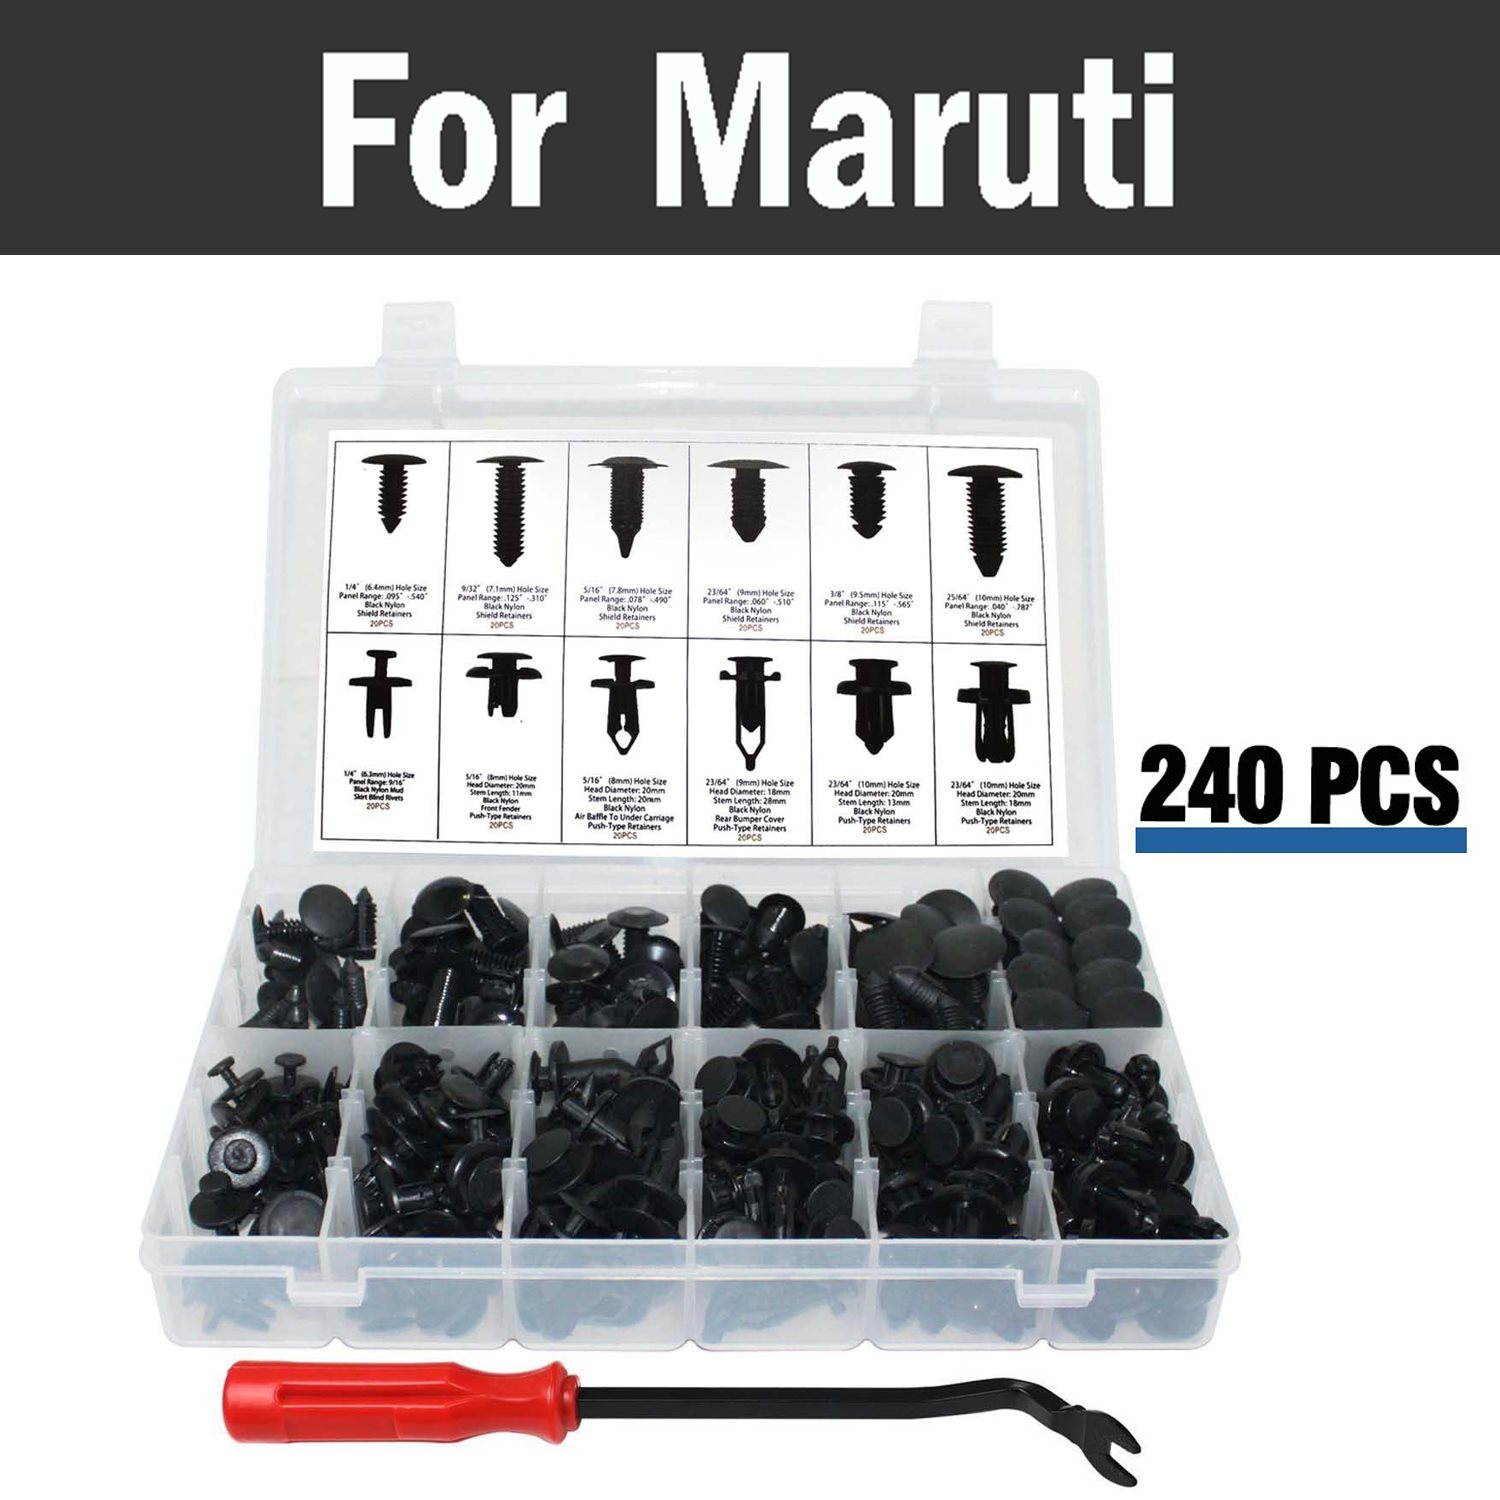 New 240pcs Car Push Retainer Kit Fits Panel Body Assortment Set Storage Case Rivets For Maruti 800 Alto Baleno Esteem Gypsy Zen